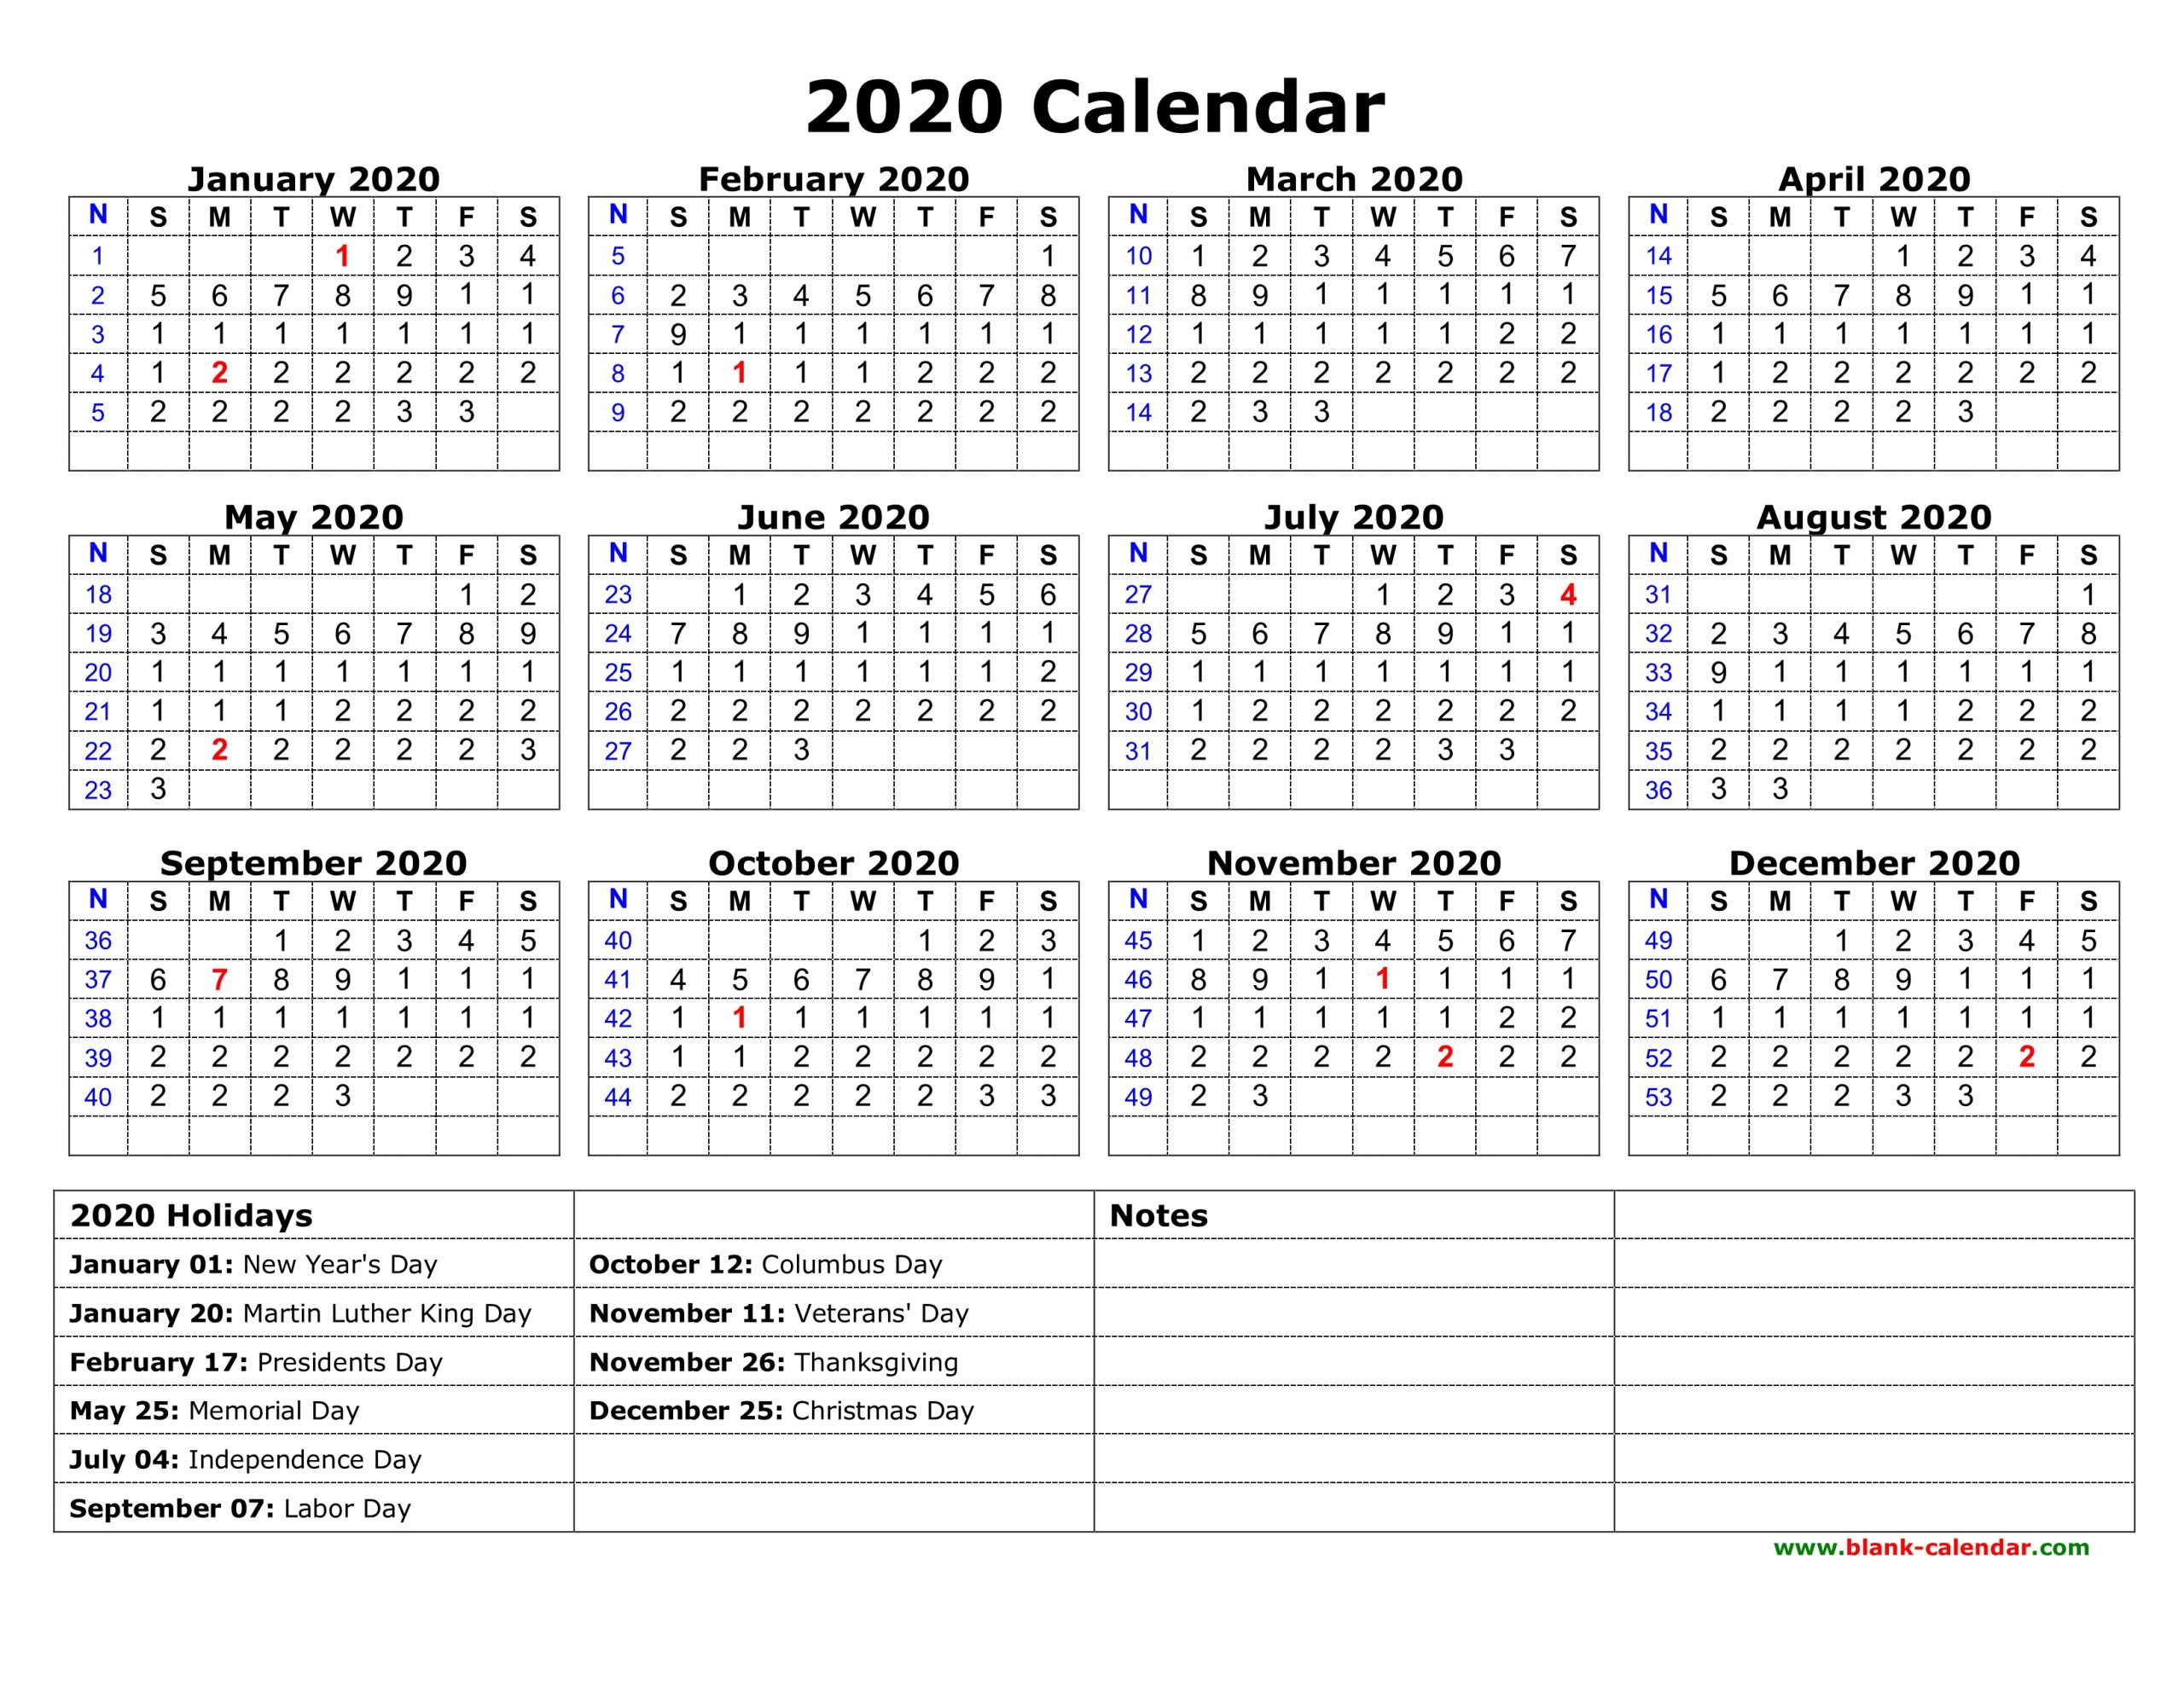 Calendar 2020 Printable With Holidays - Togo.wpart.co